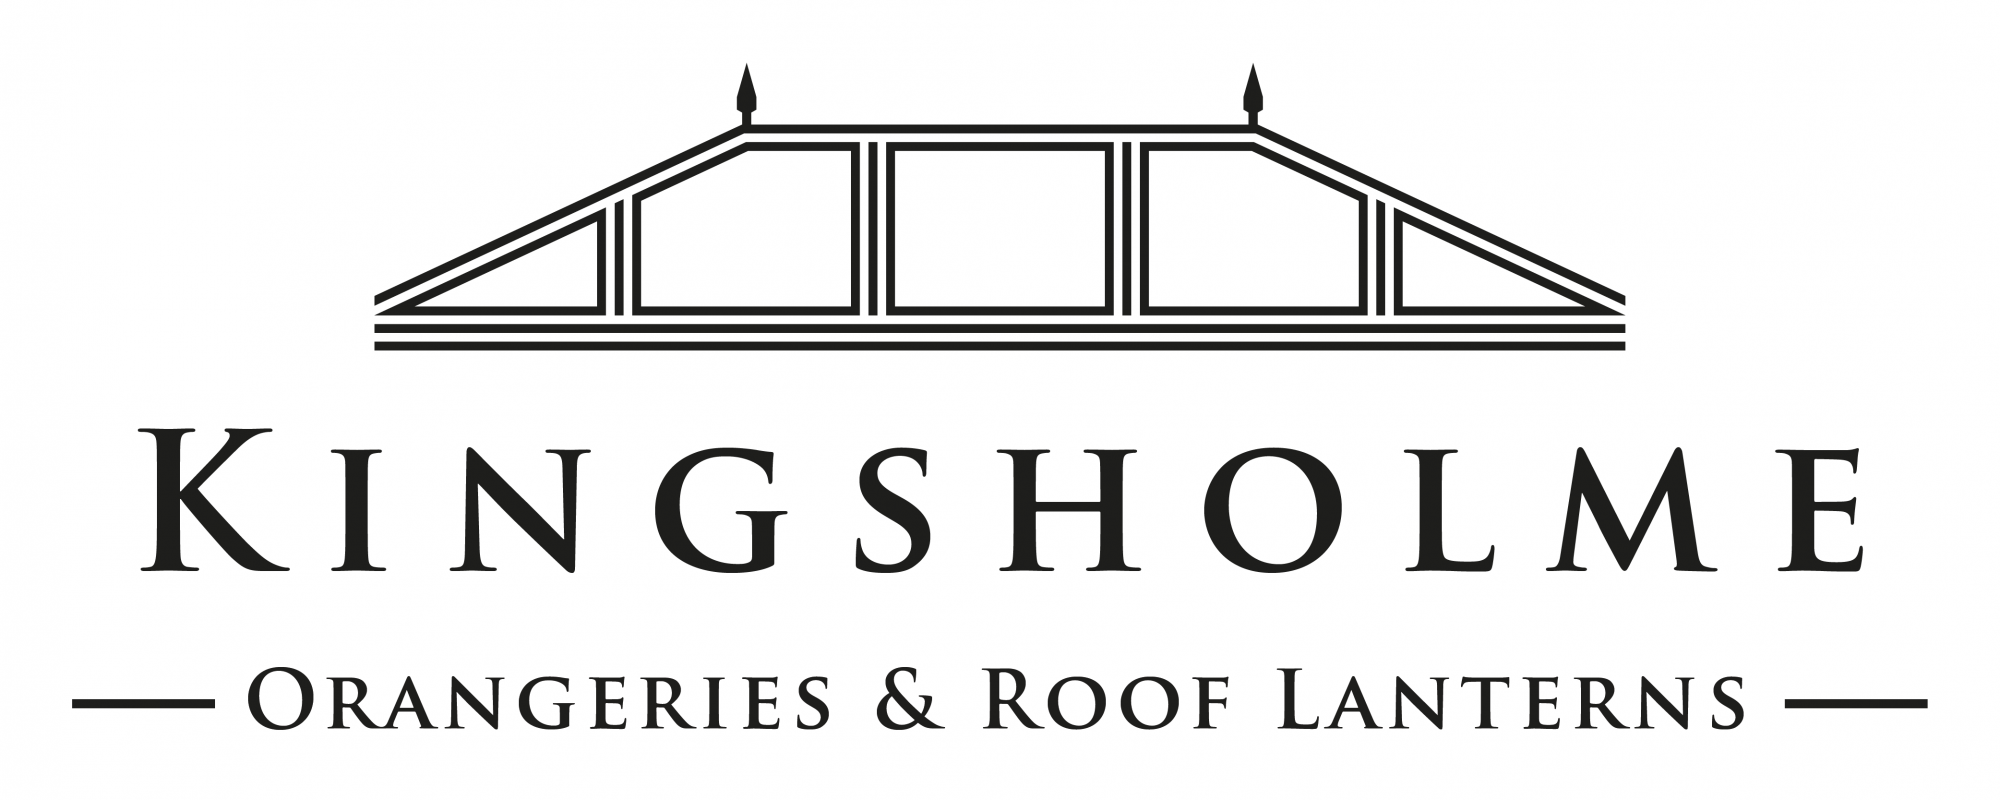 Guarantee - Orangeries & Roof Lanterns by Kingsholme